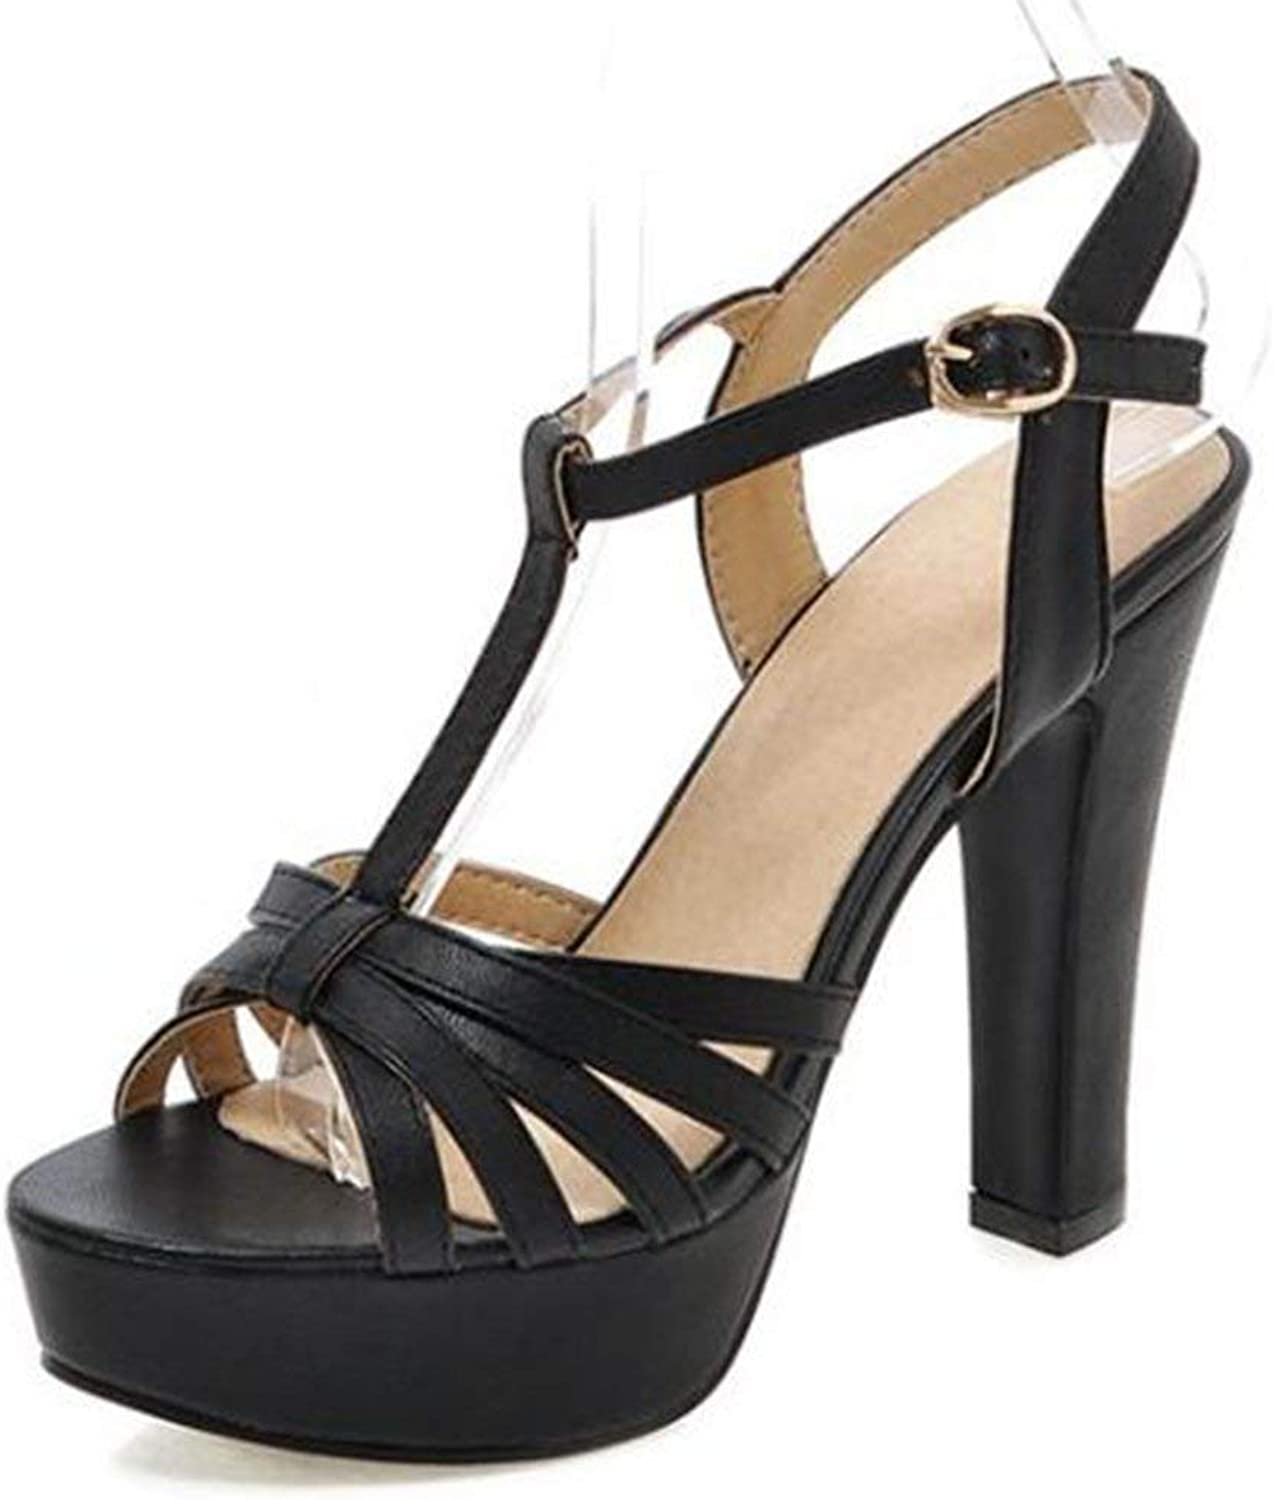 Lelehwhge Women's Sexy Peep Toe T-Strap Cocktail shoes Chunky High Heel Platform Strappy Sandals Beige 4 M US